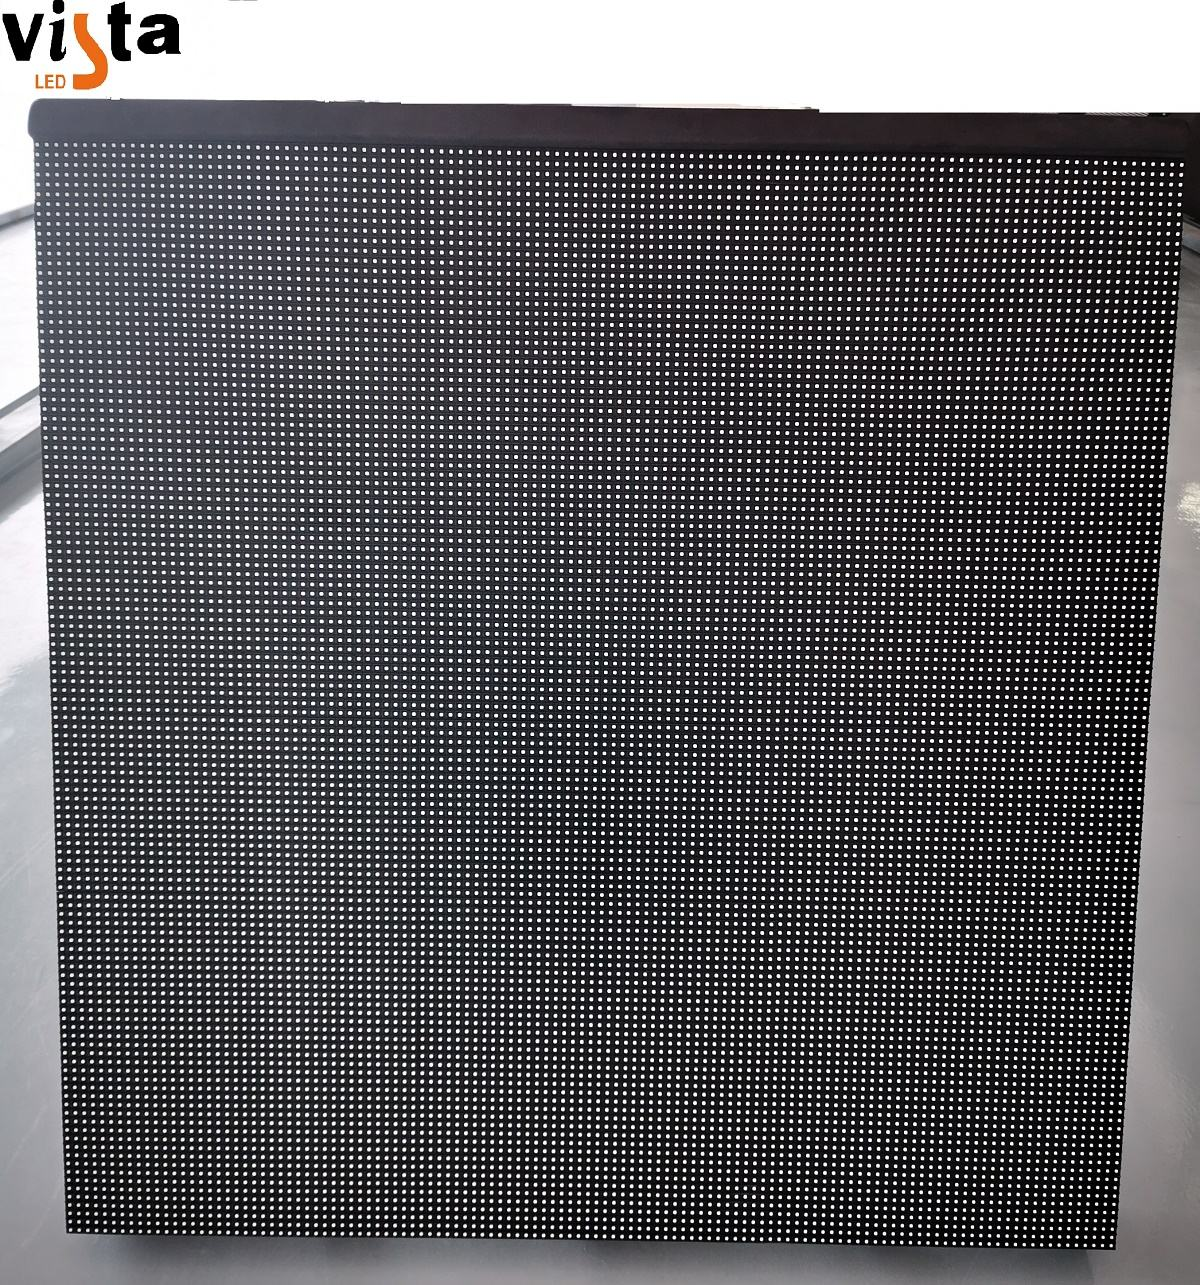 Custom size hd full color outdoor stage pantalla led stadium tv P8mm p8 p10 store big screen